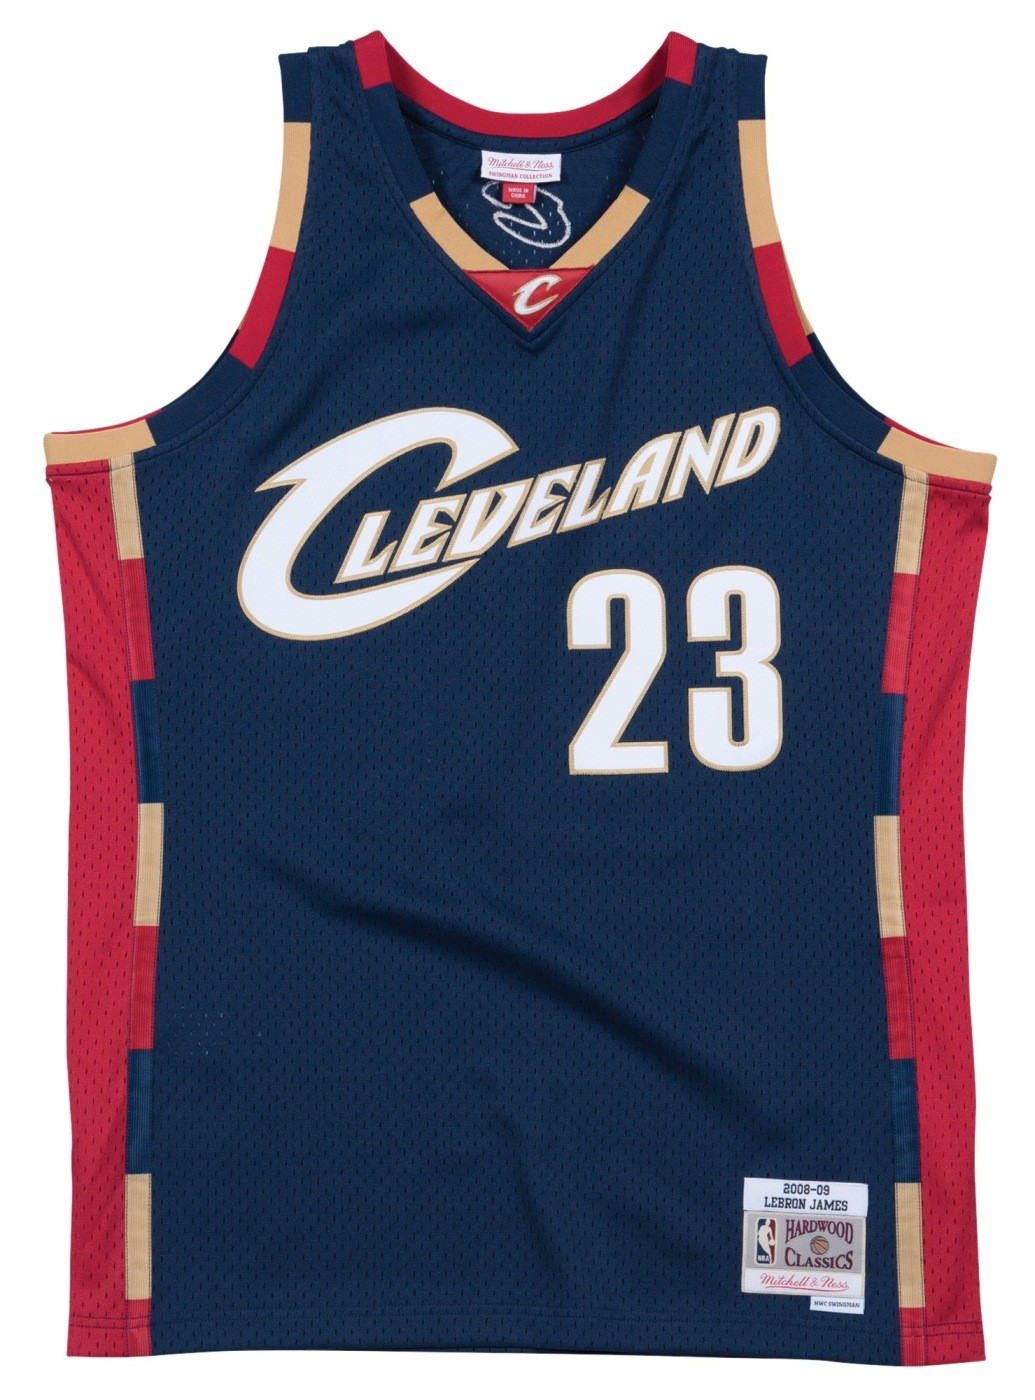 timeless design 74b04 caf0f Details about Lebron James Cleveland Cavaliers Mitchell & Ness NBA Swingman  HWC Jersey - Navy